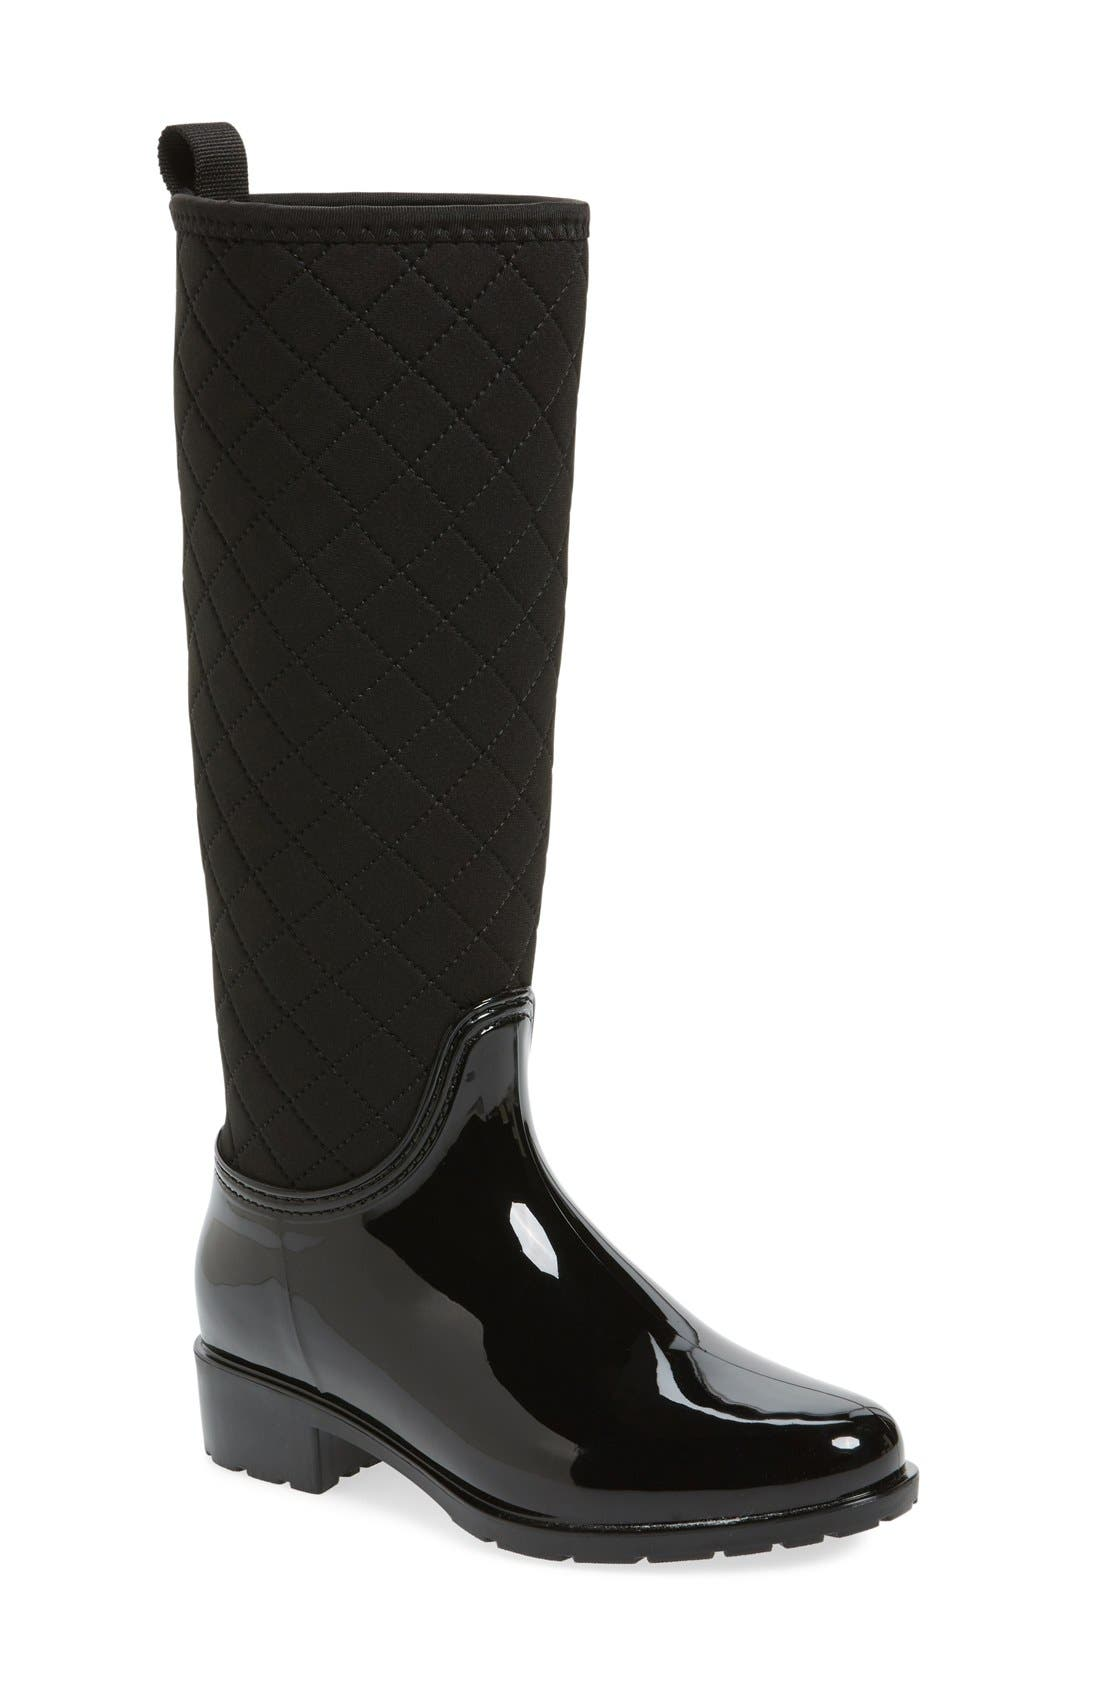 Parma Quilted Tall Waterproof Rain Boot,                             Main thumbnail 1, color,                             BLACK